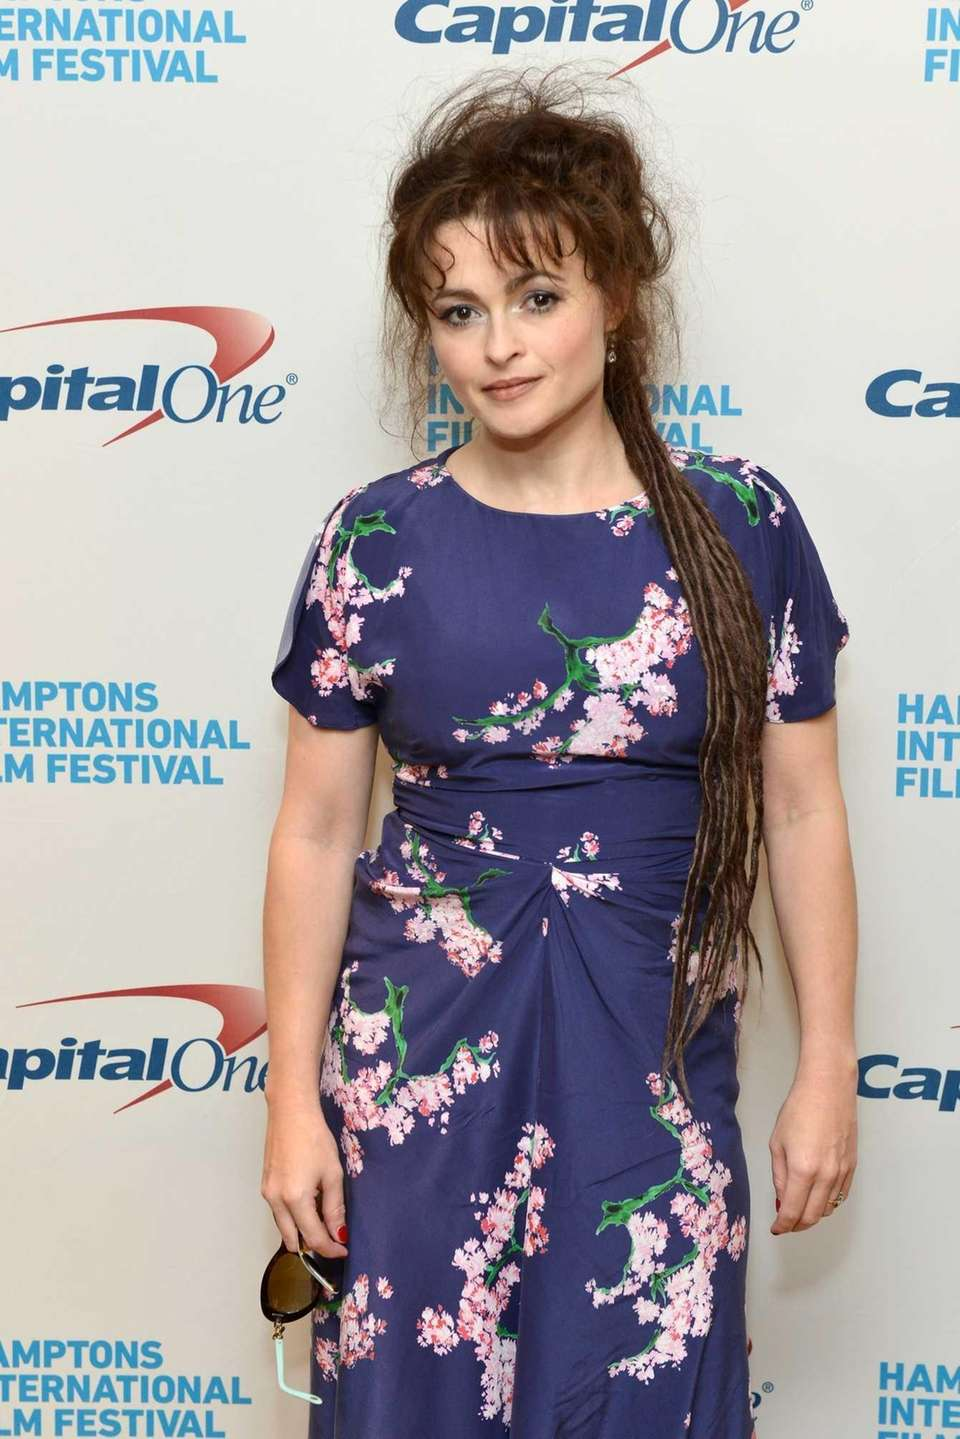 Actress Helena Bonham Carter was born May 26,